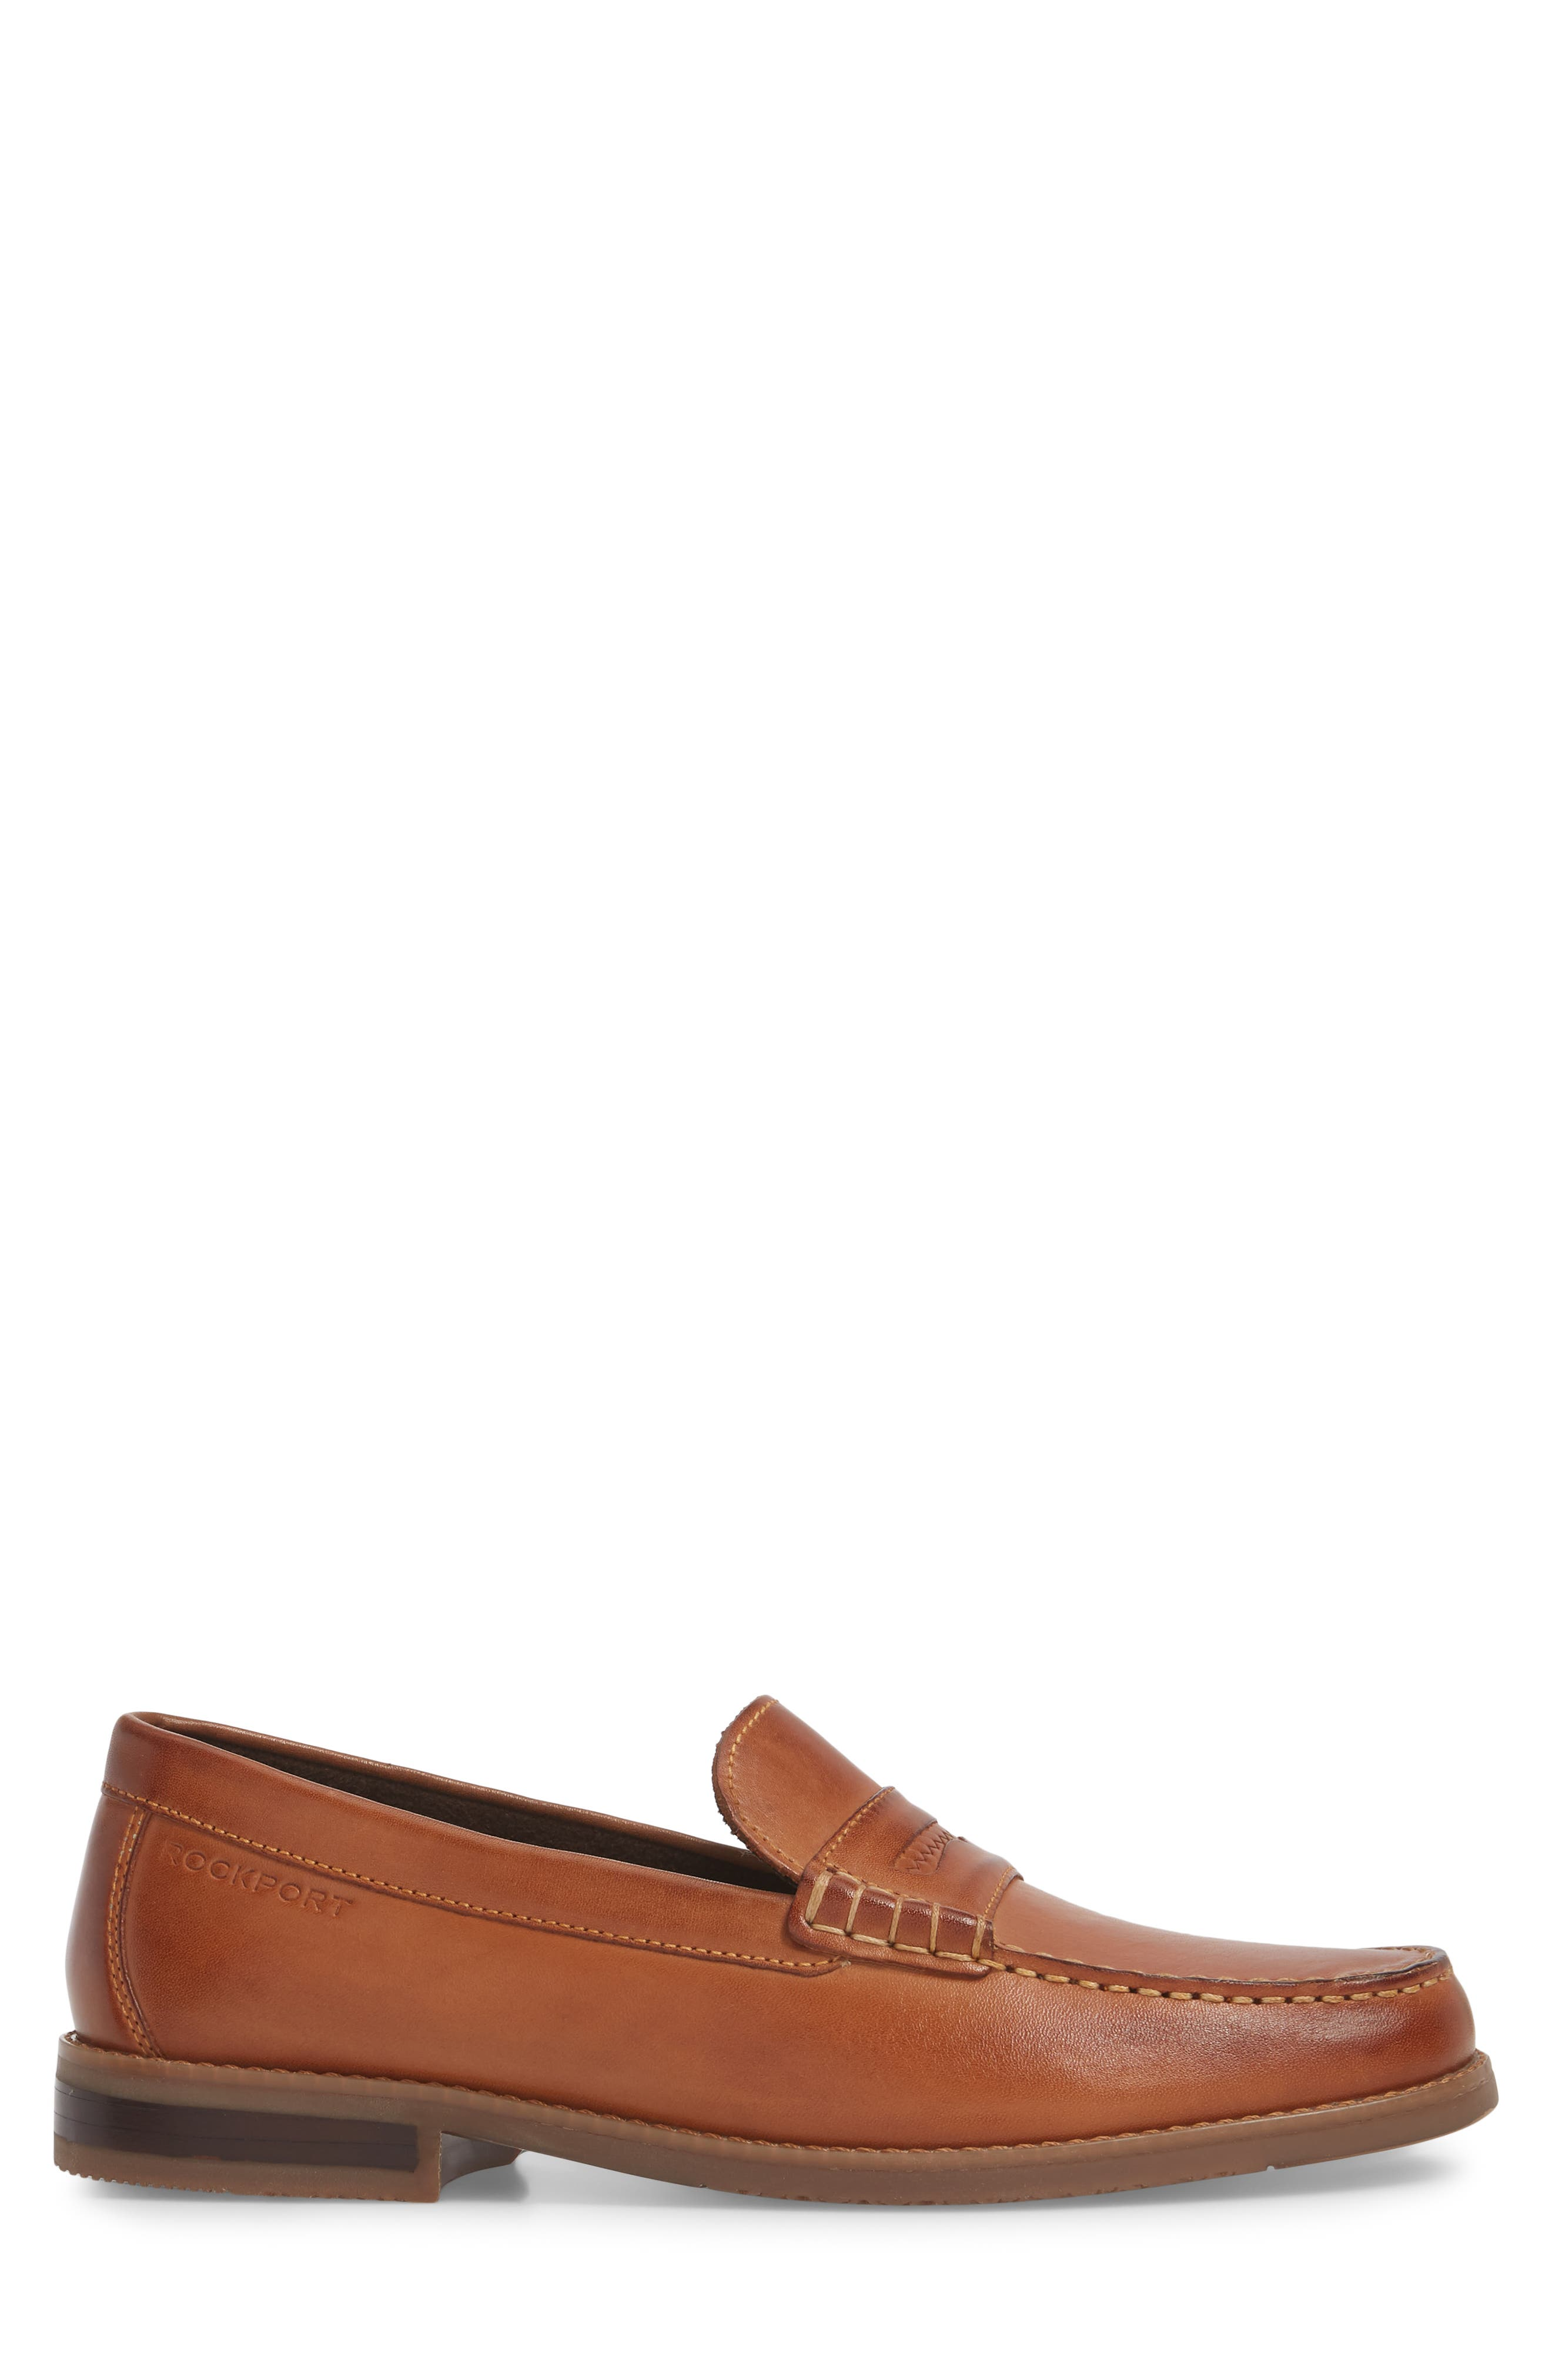 Cayleb Moc Toe Penny Loafer,                             Alternate thumbnail 3, color,                             Cognac Leather